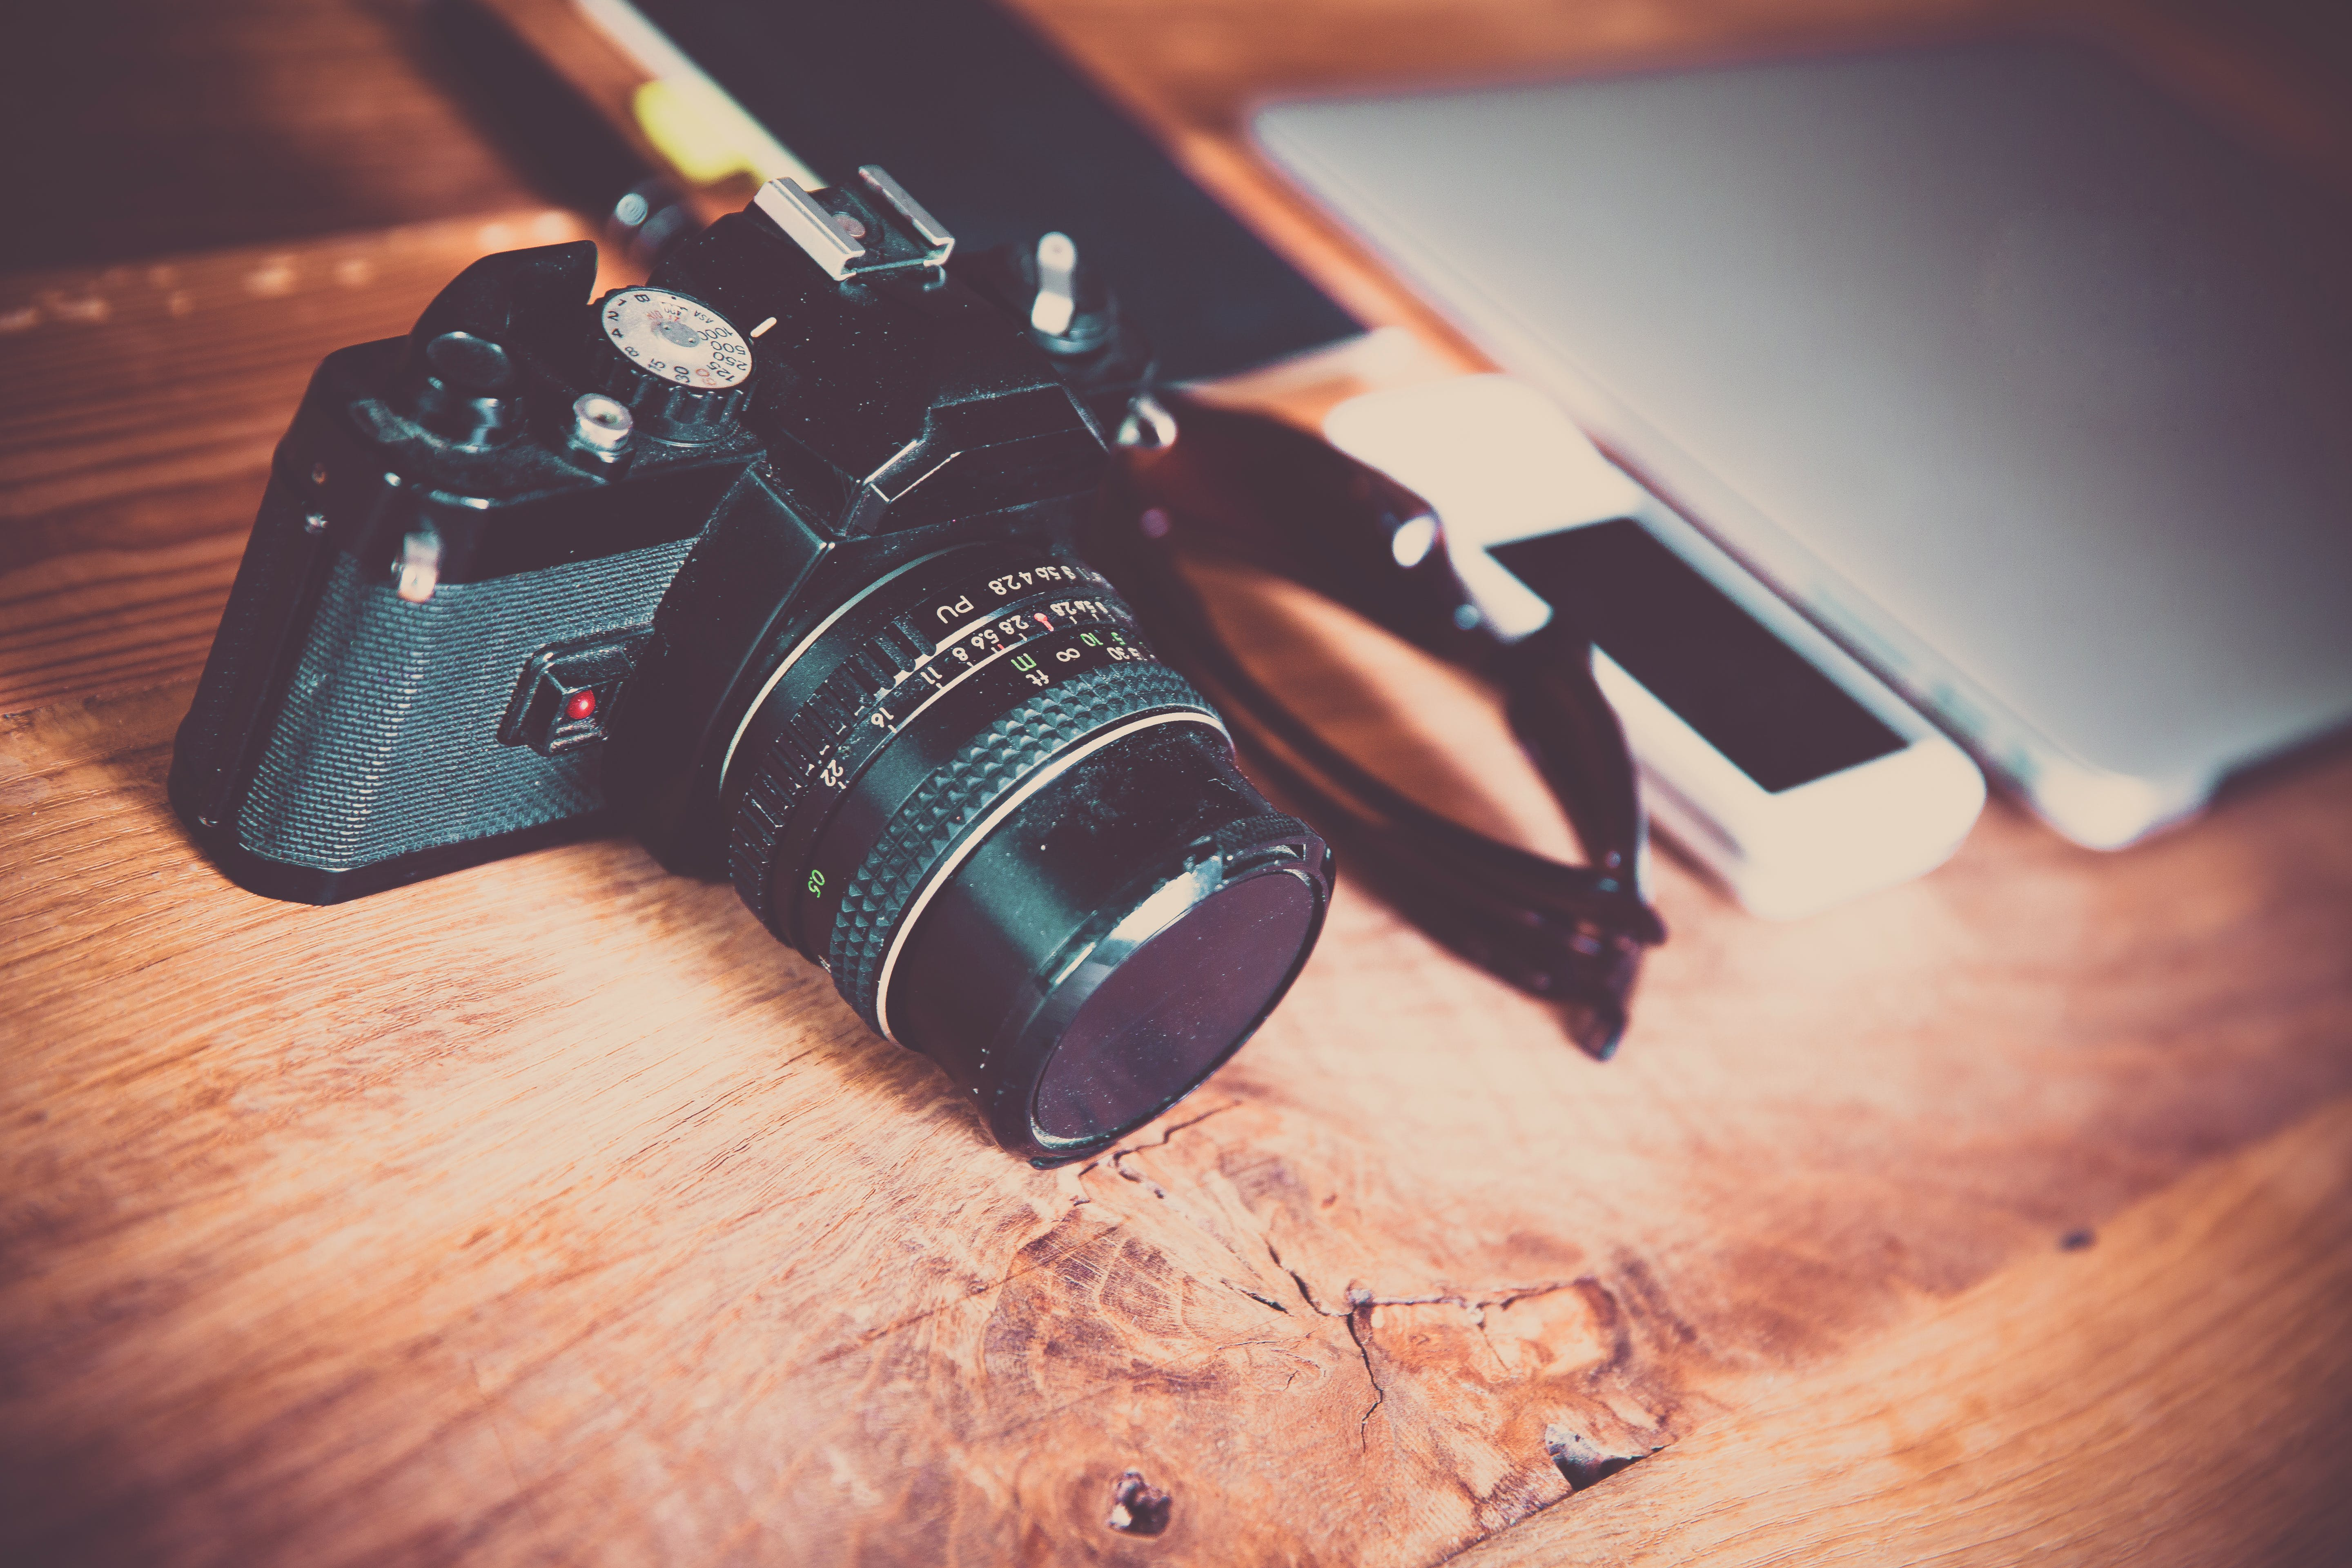 Black Slr Camera on Wooden Surface